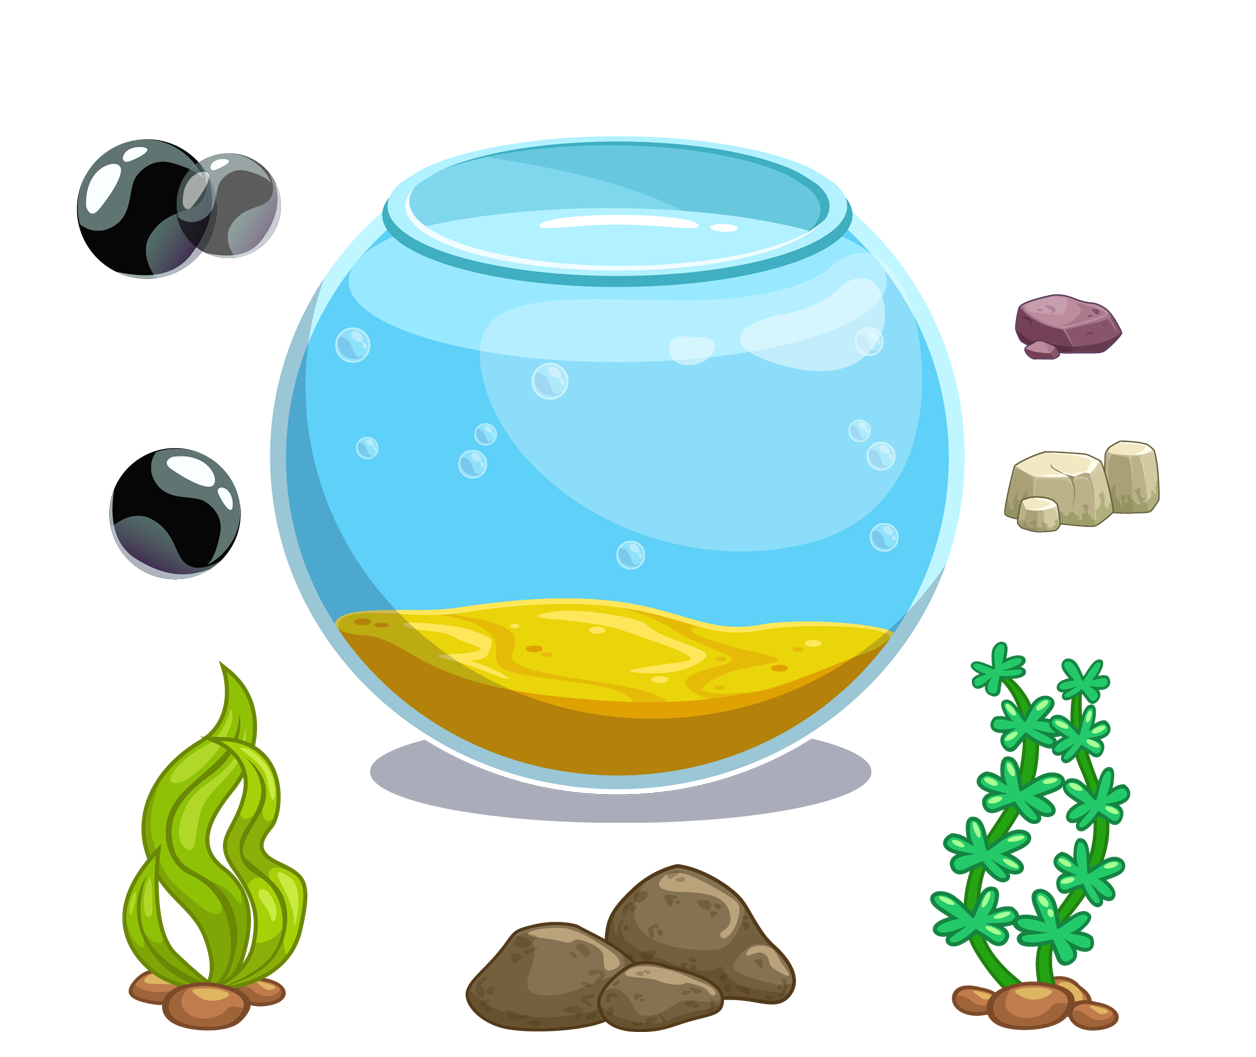 Fish tank transparent clipart clip royalty free Cartoon Aquarium Icon - Cartoon fish tank 1256*1057 transprent Png ... clip royalty free